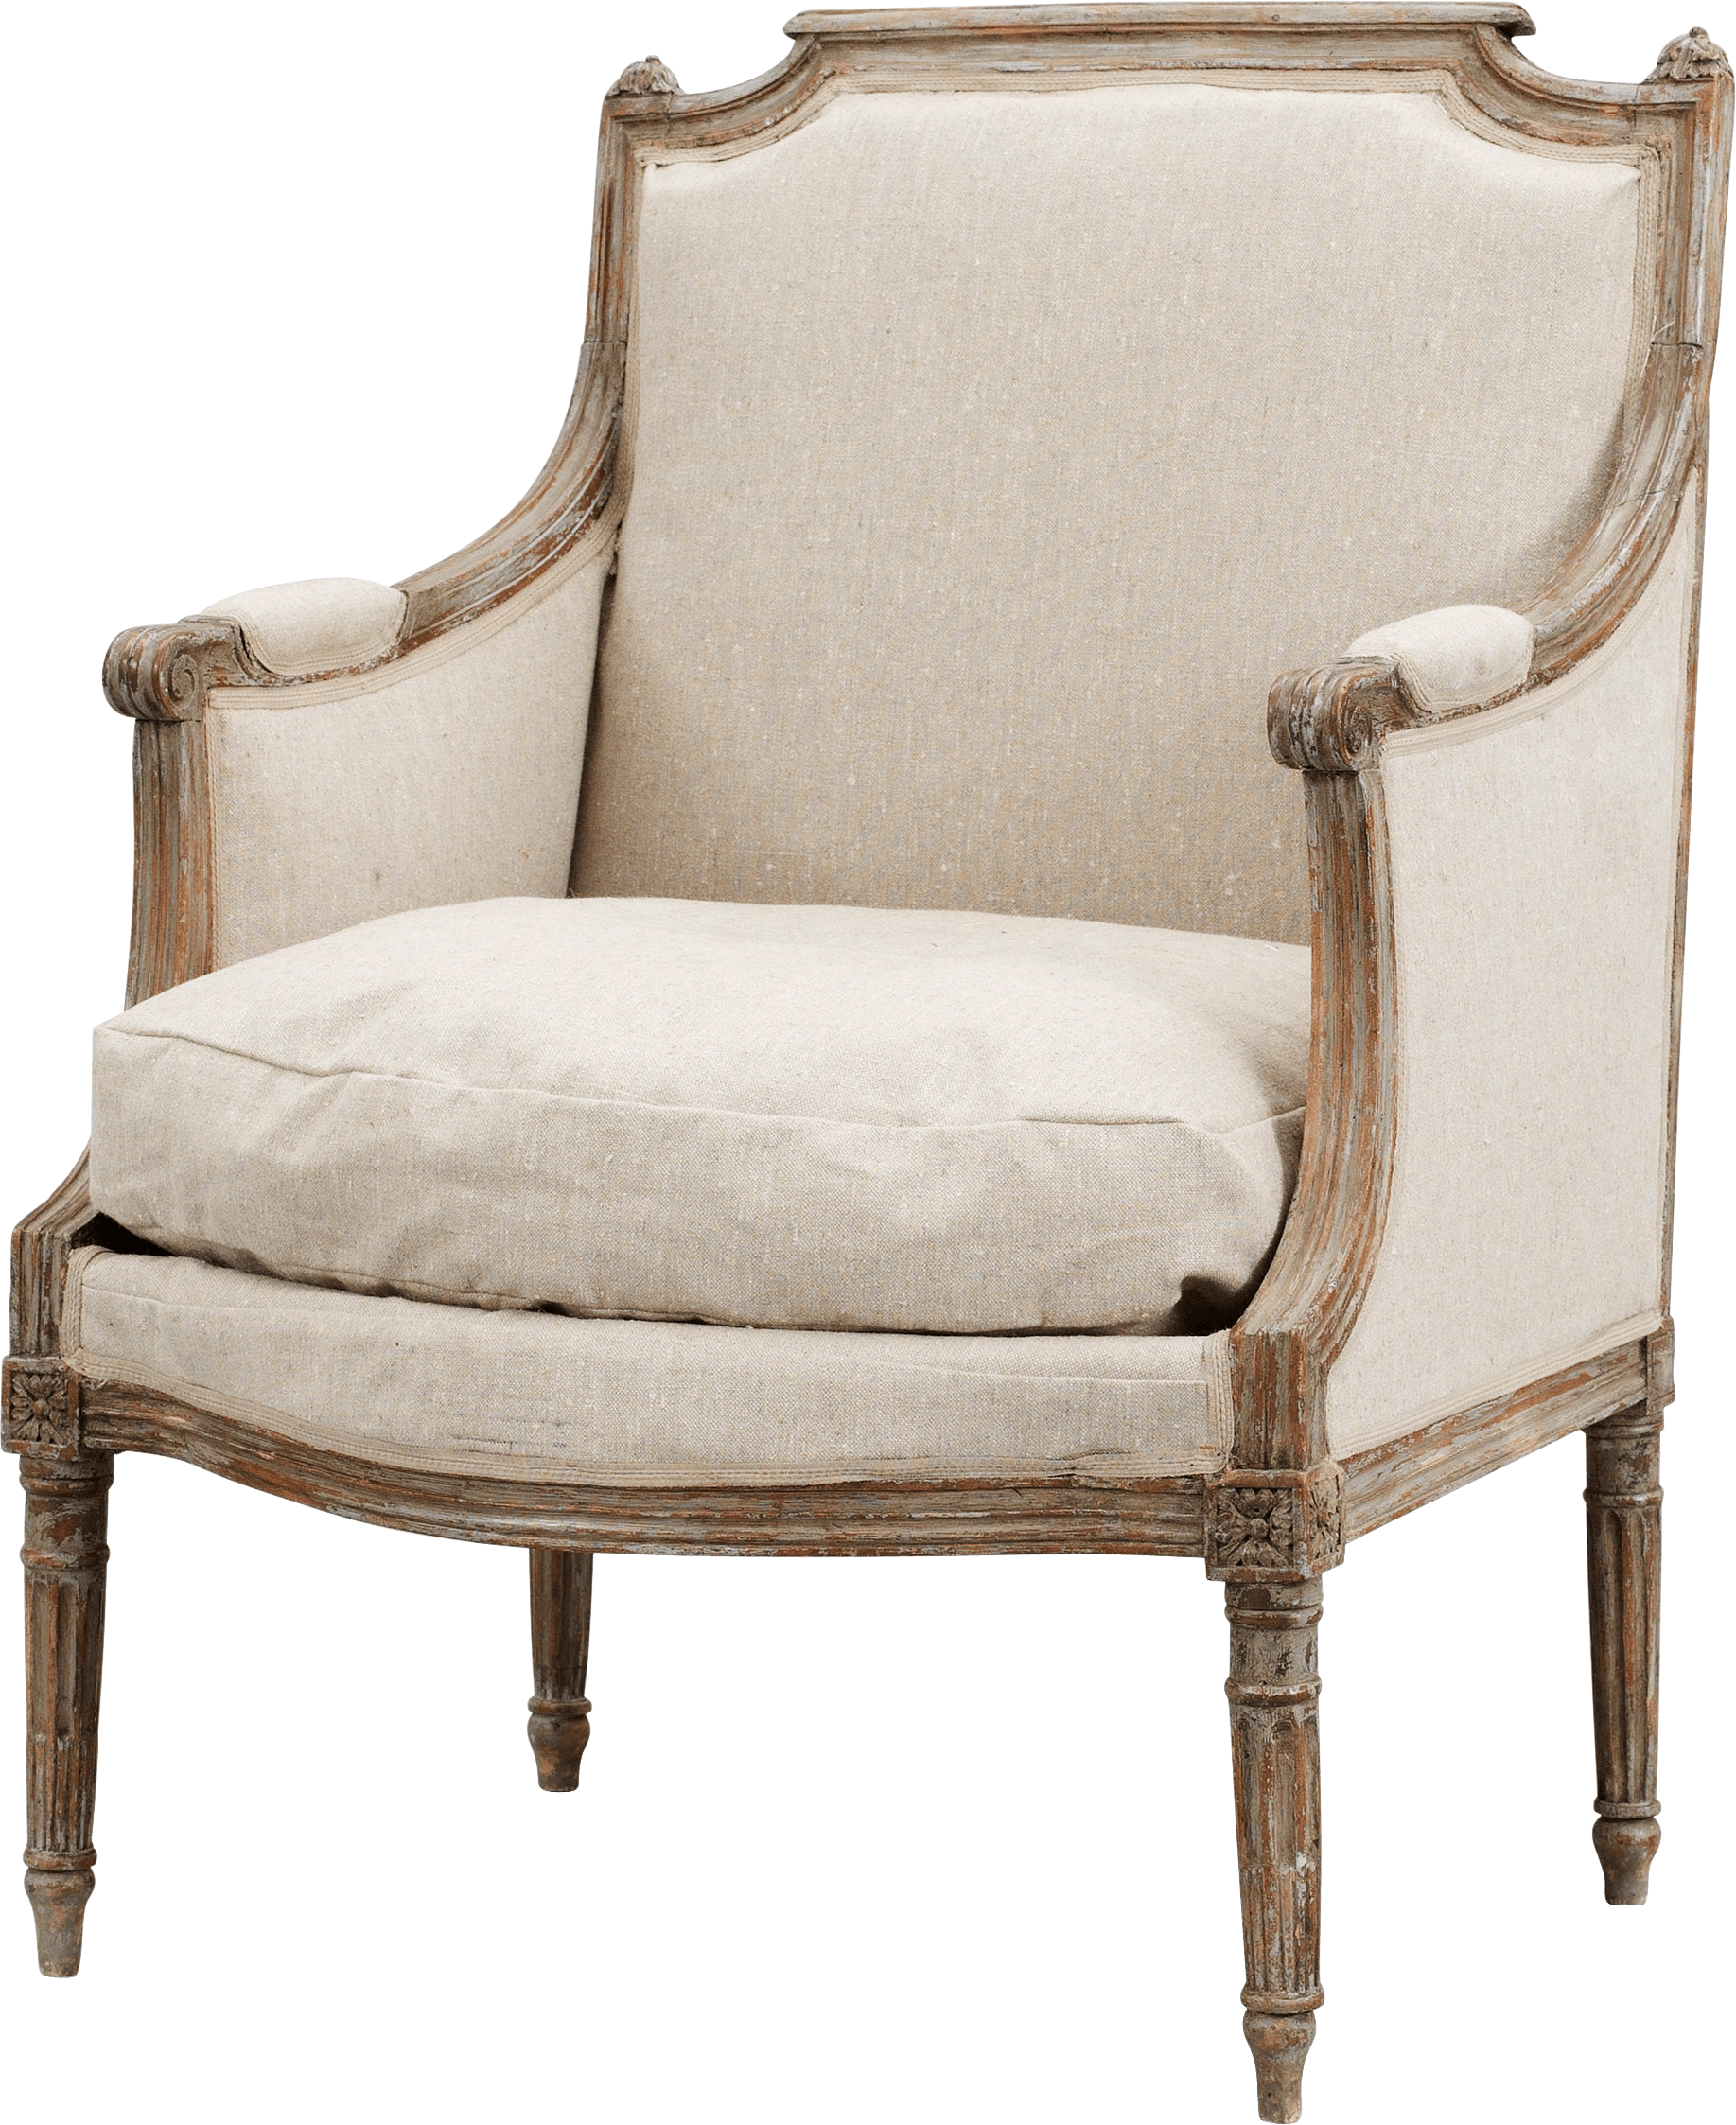 White Armchair Png Image PNG Image